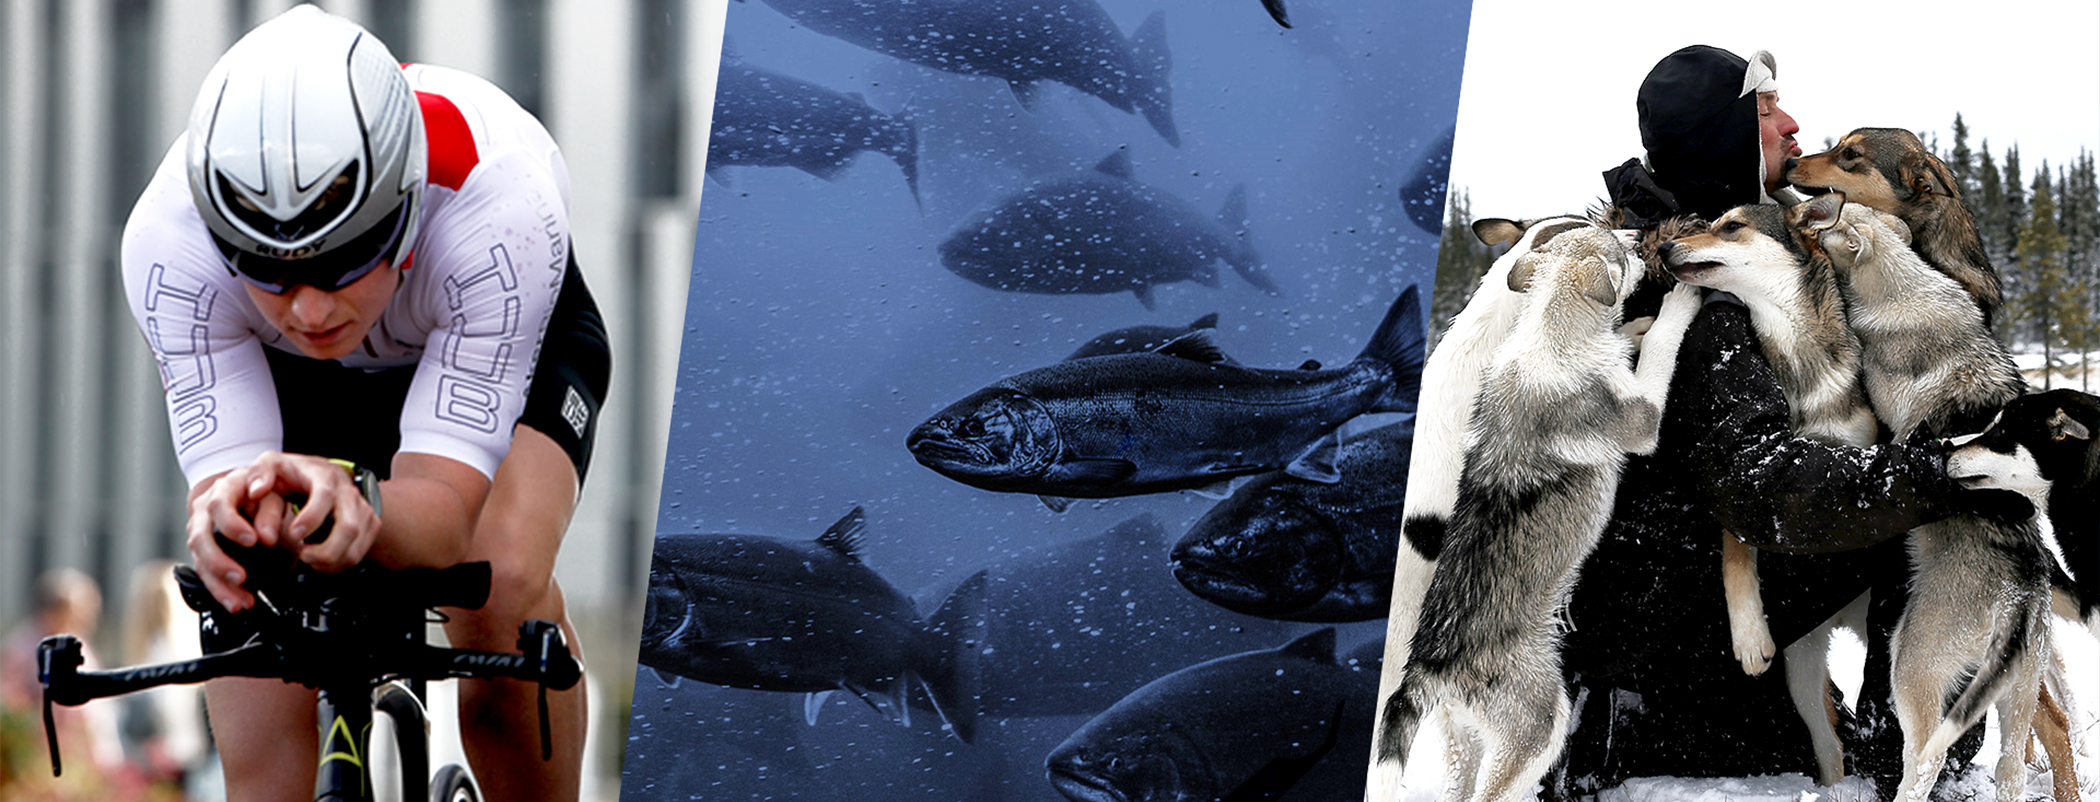 krill works for dogs, human sports and fish